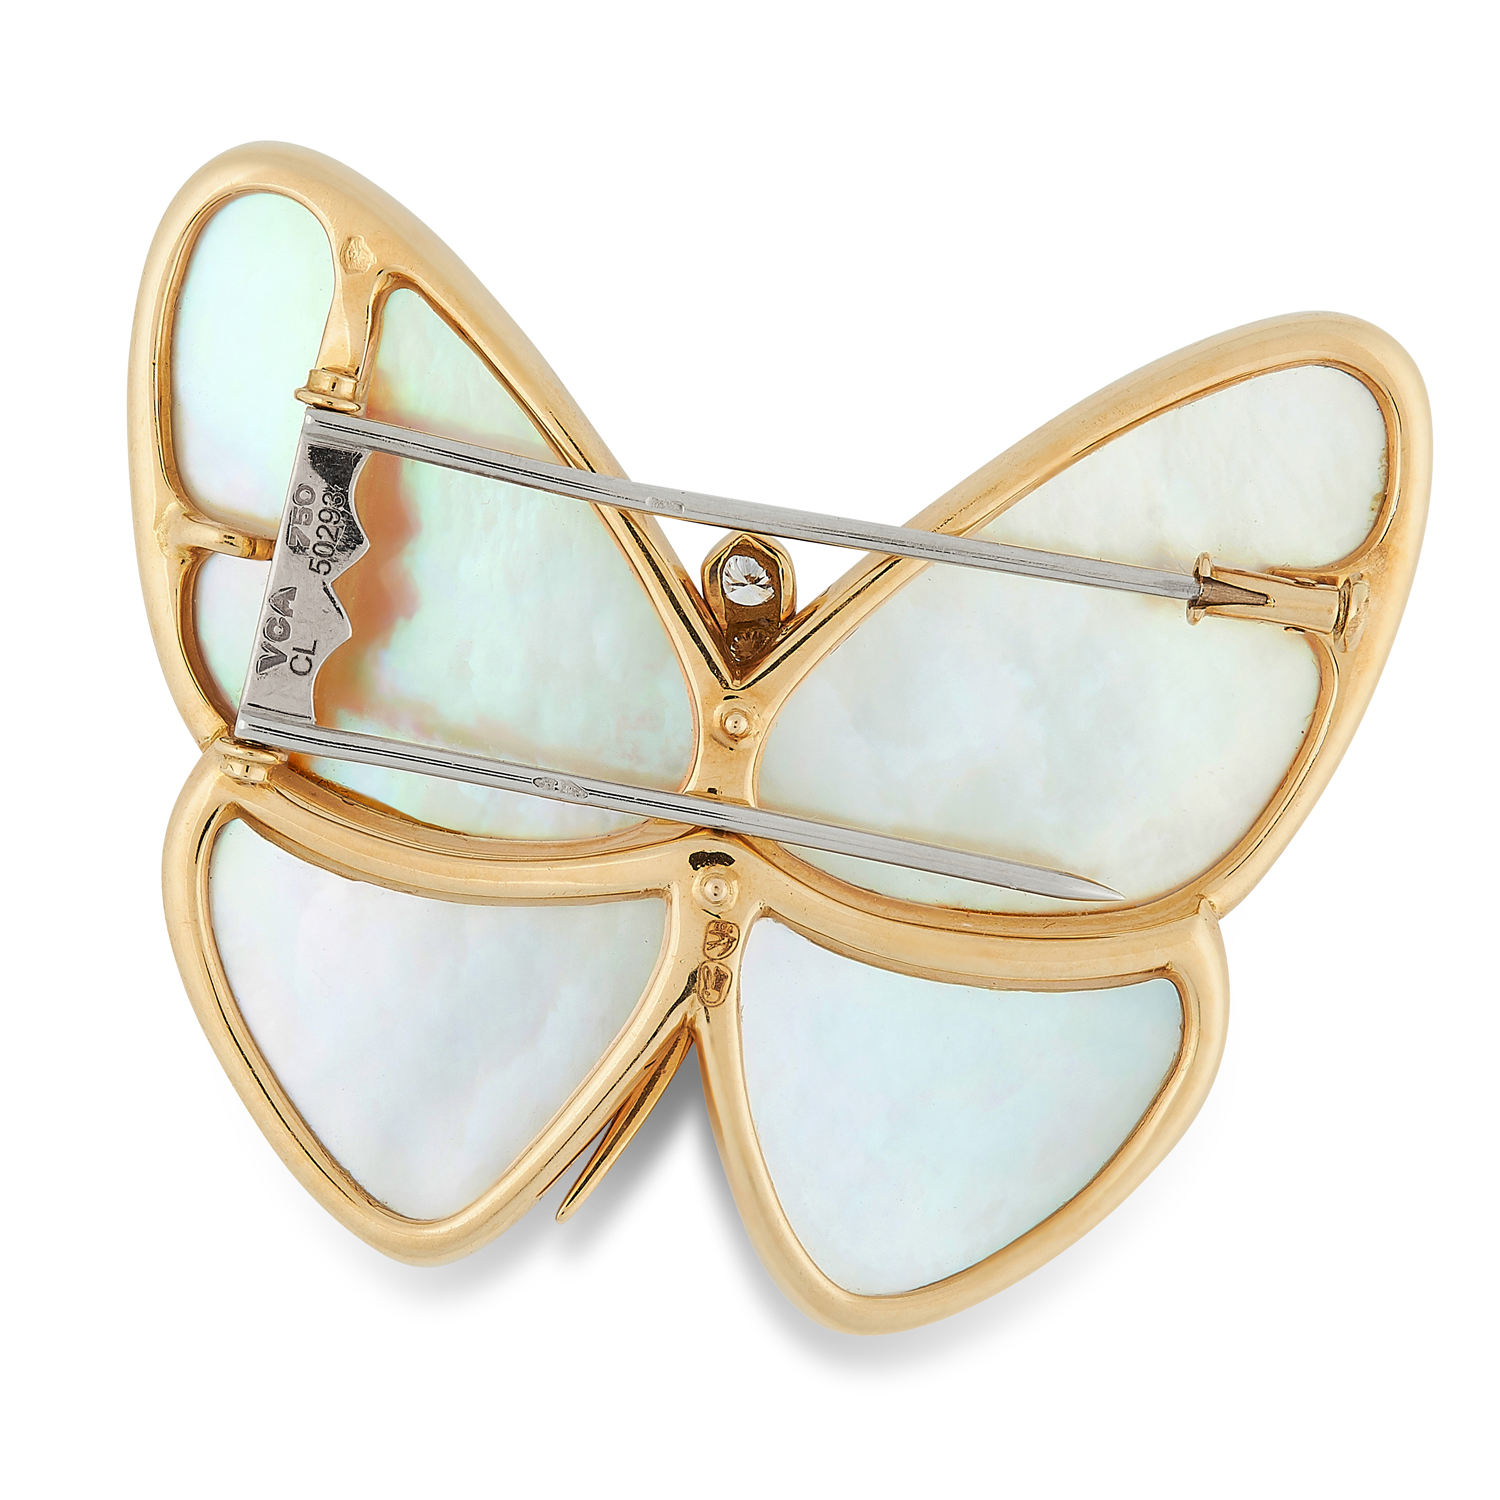 A MOTHER OF PEARL AND DIAMOND BUTTERFLY BROOCH, VA - Image 2 of 2